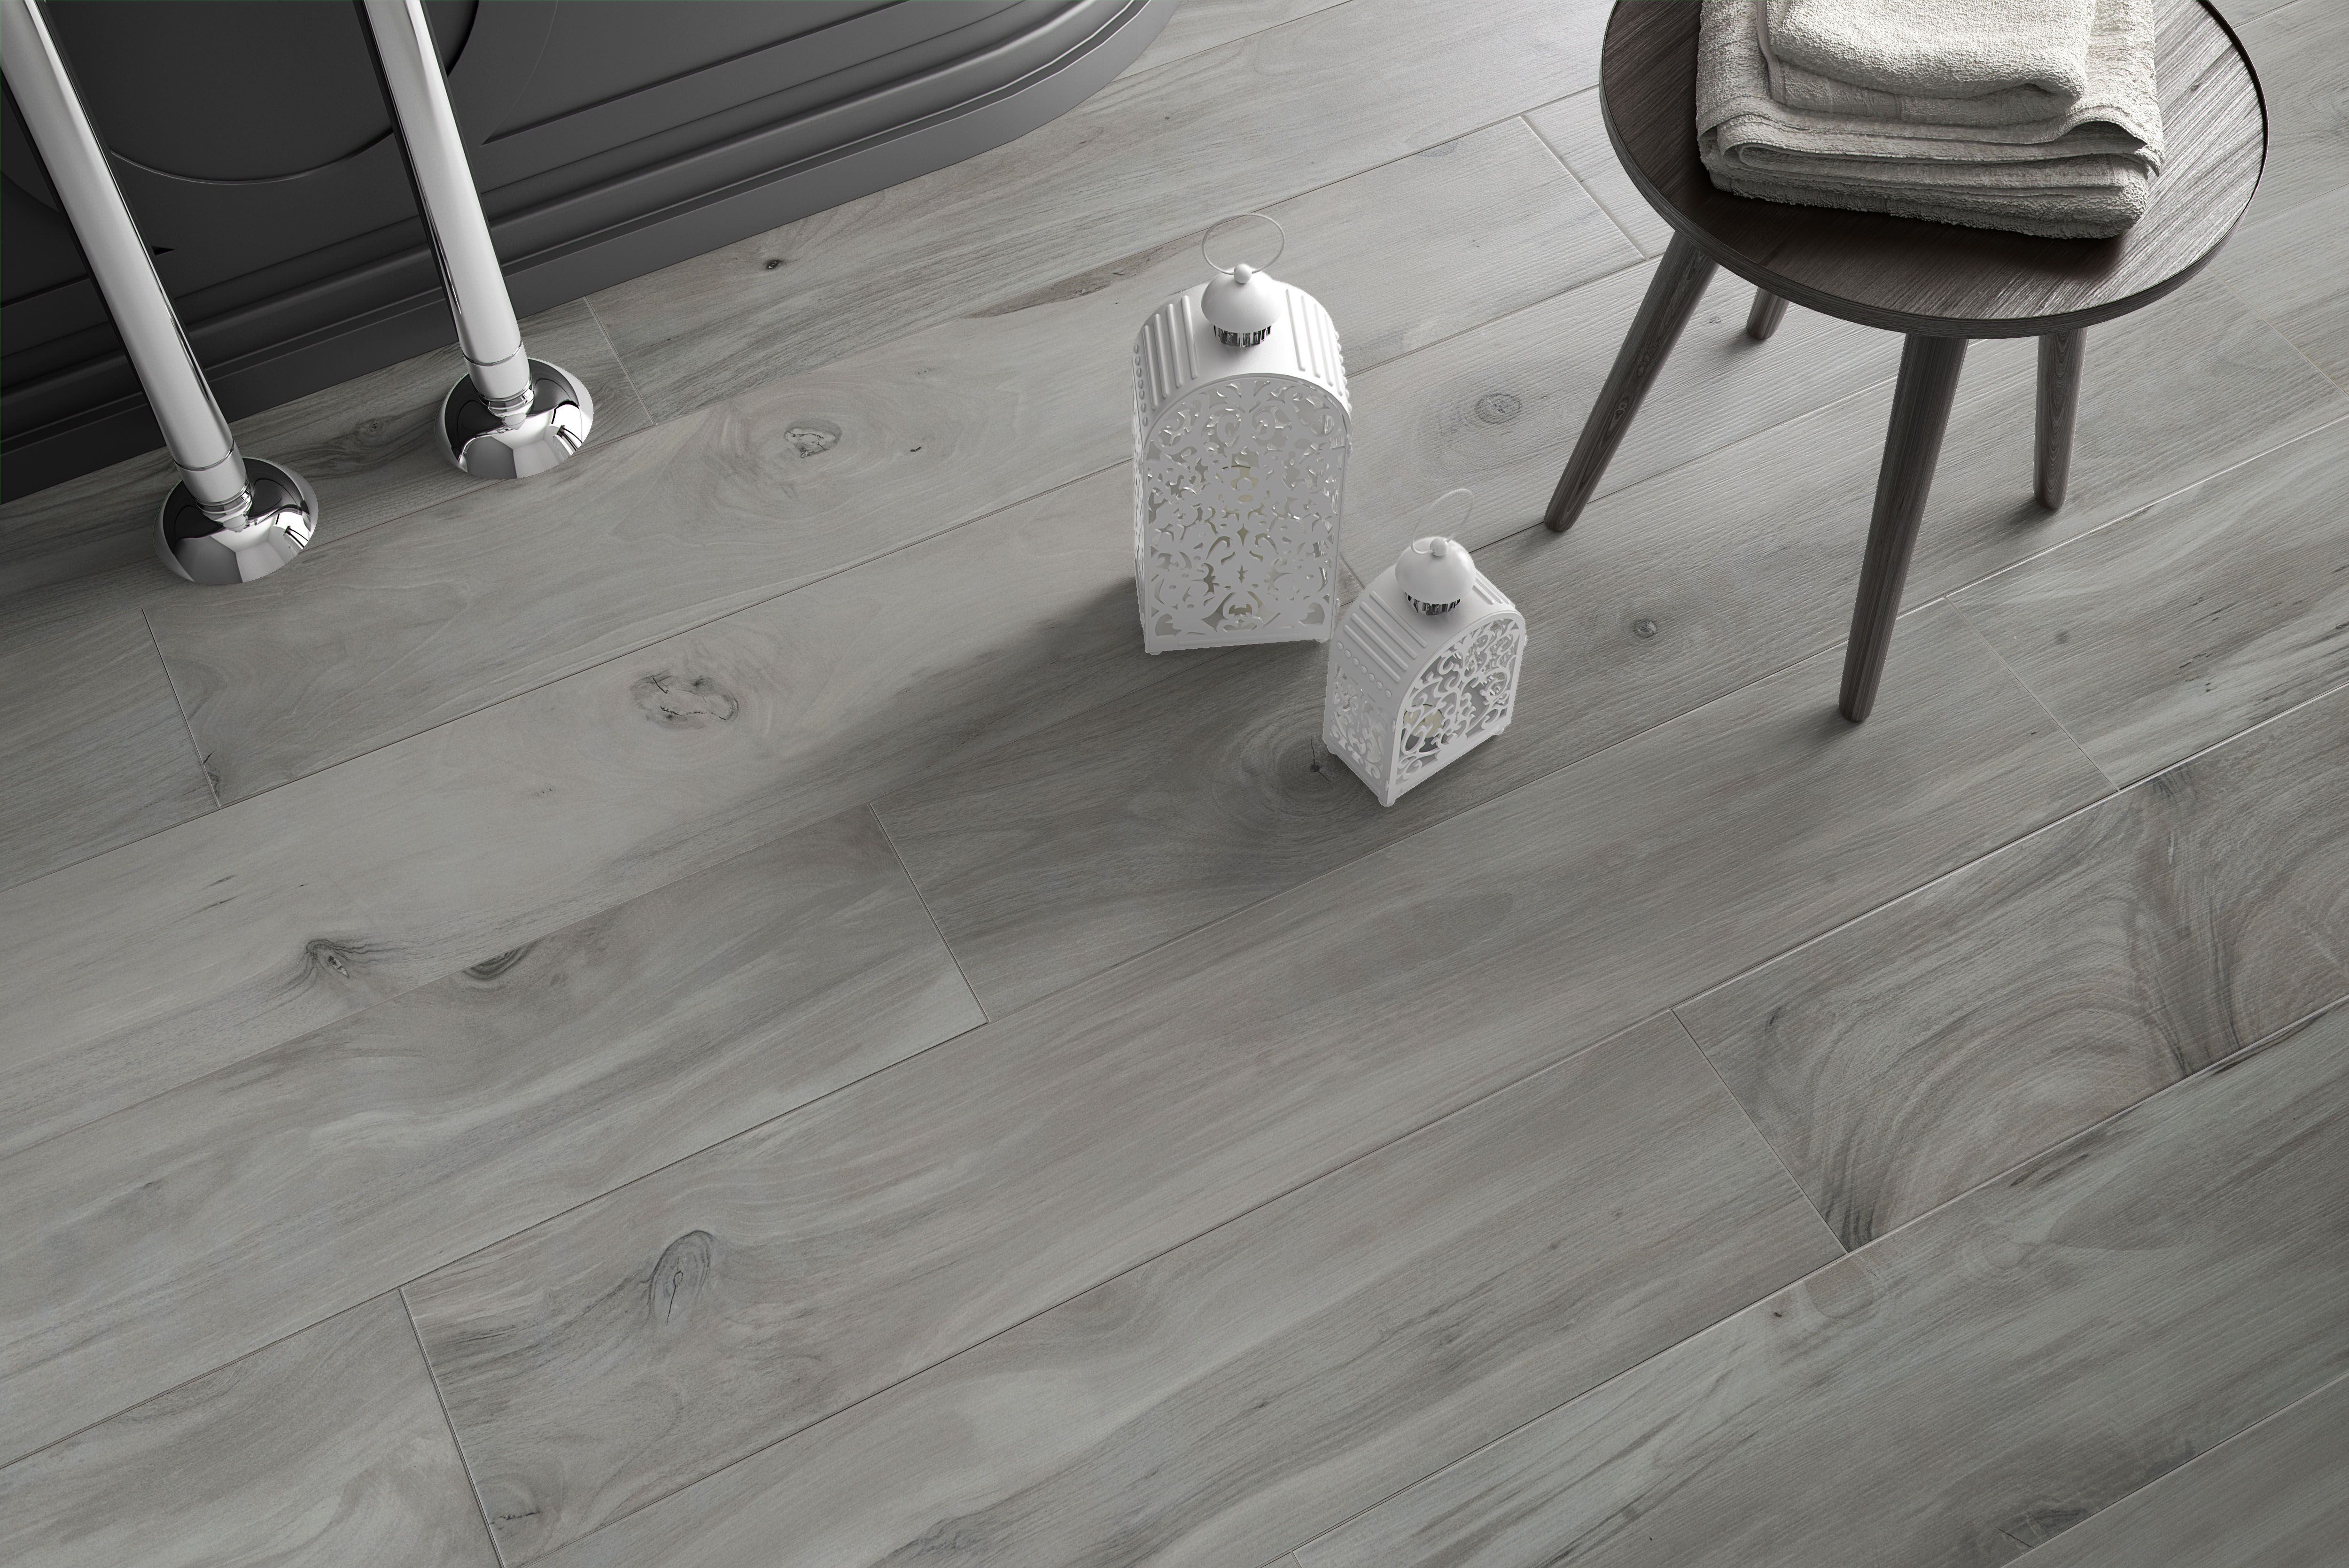 Emigres Longwood Mde 113 8 X48 Porcelain Tile Find This Tile And Many Others In Any Of Our Three Locations In Home Decor Inspiration Flooring Hardwood Floors